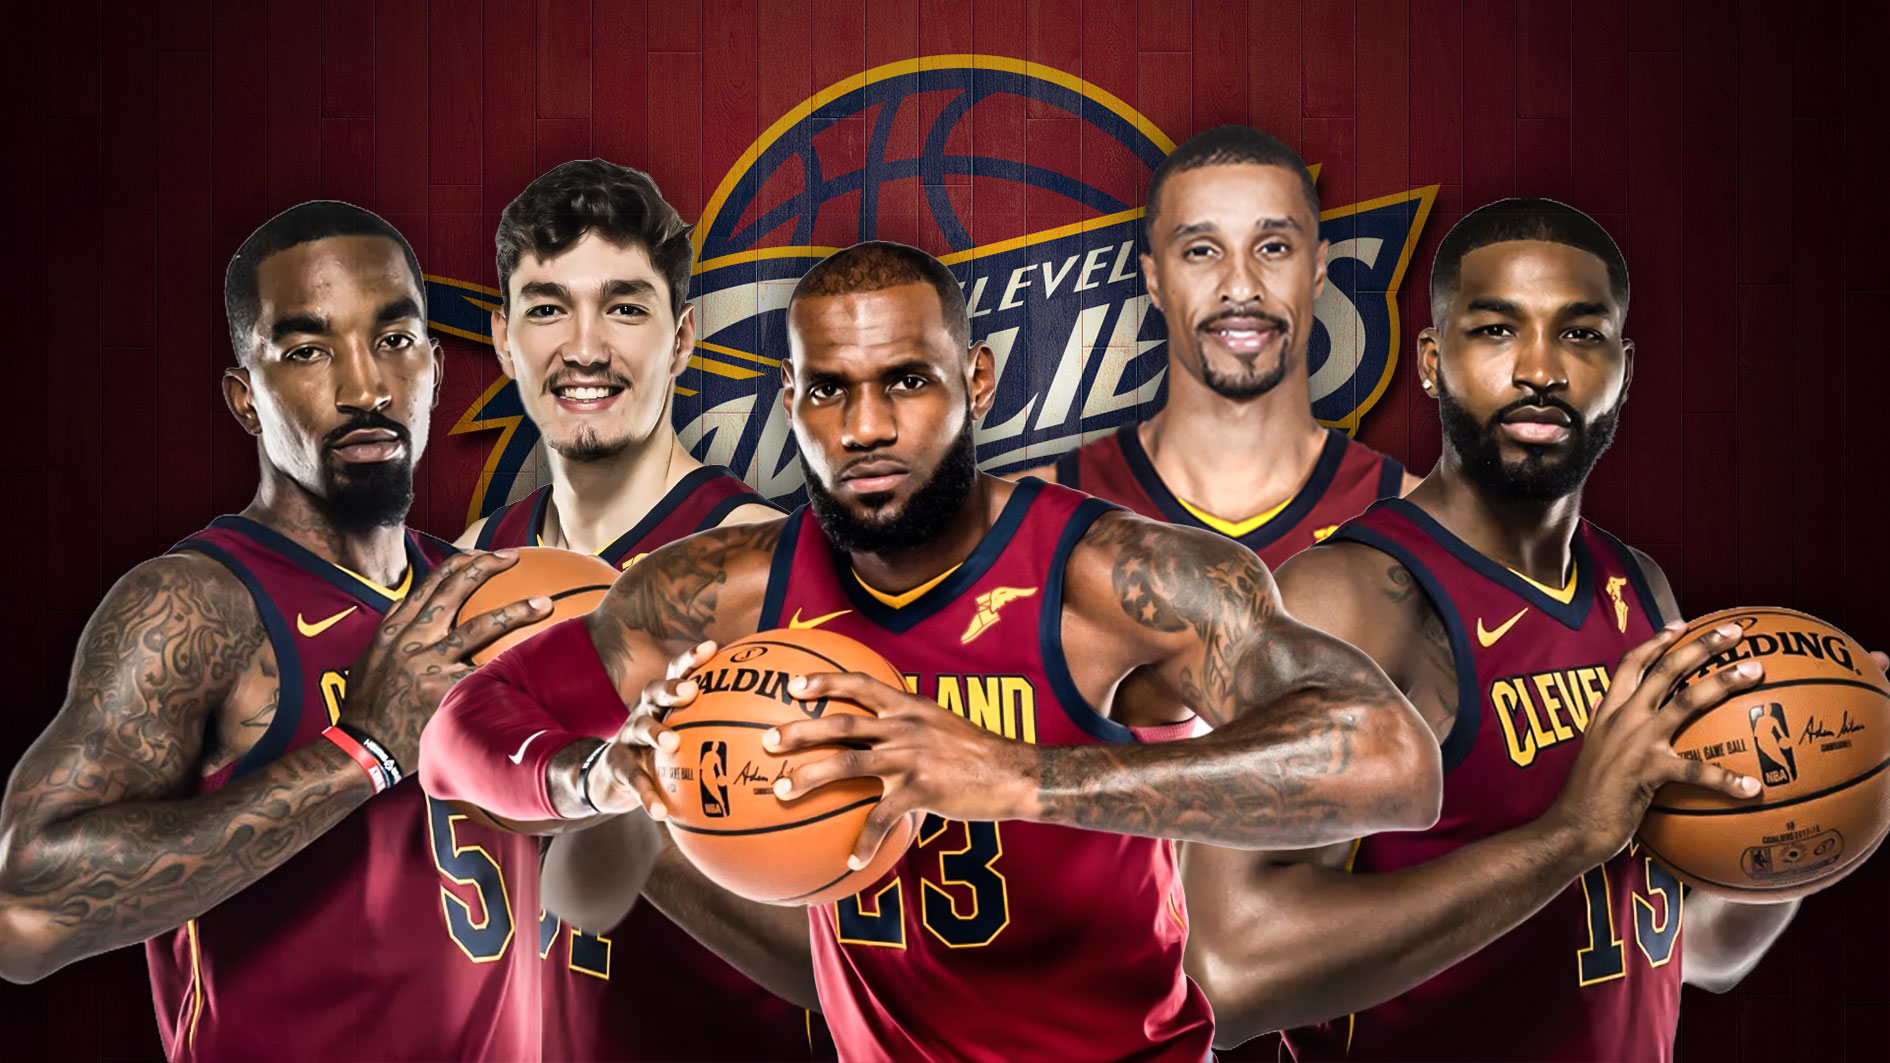 Cavs Trade Six Players, Add Four to Improve Championship Prospects